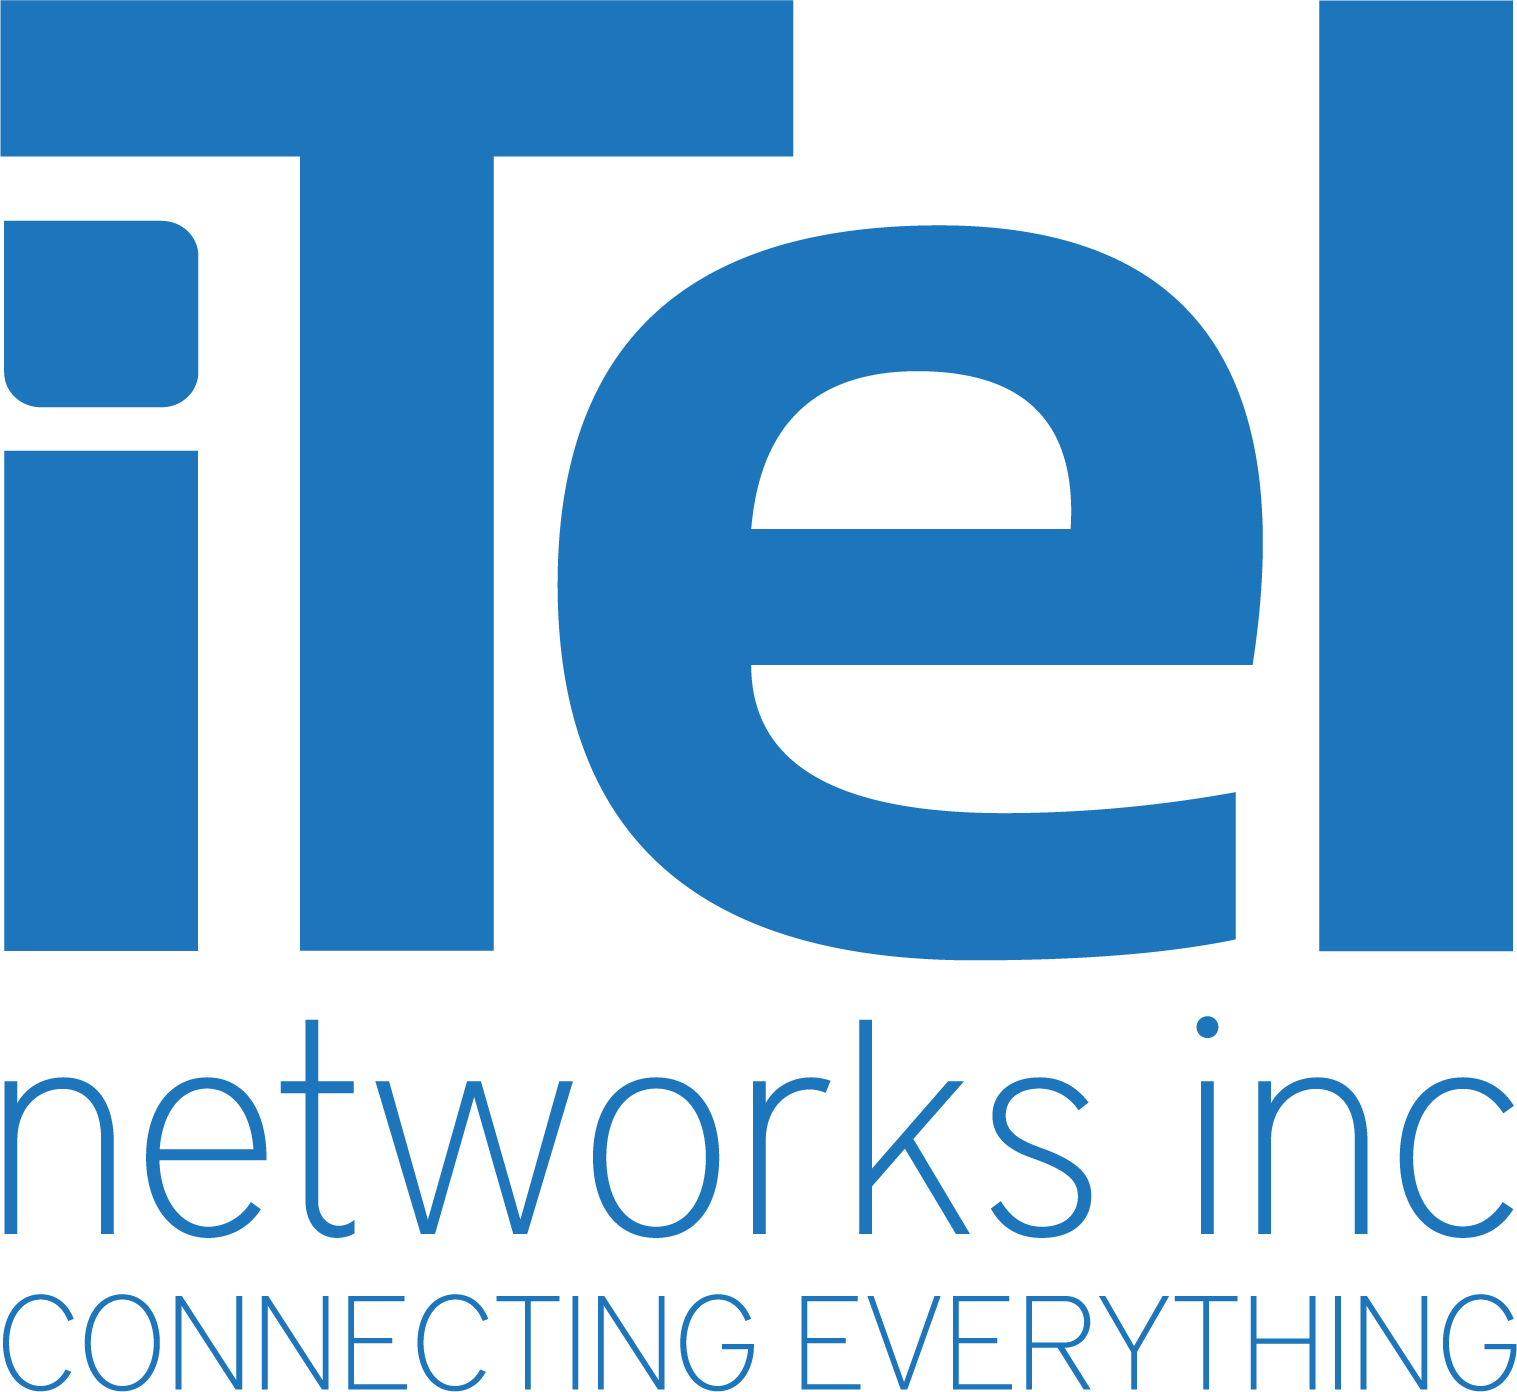 iTel Networks and Comcast Business partner to power up a cross-border broadband footprint